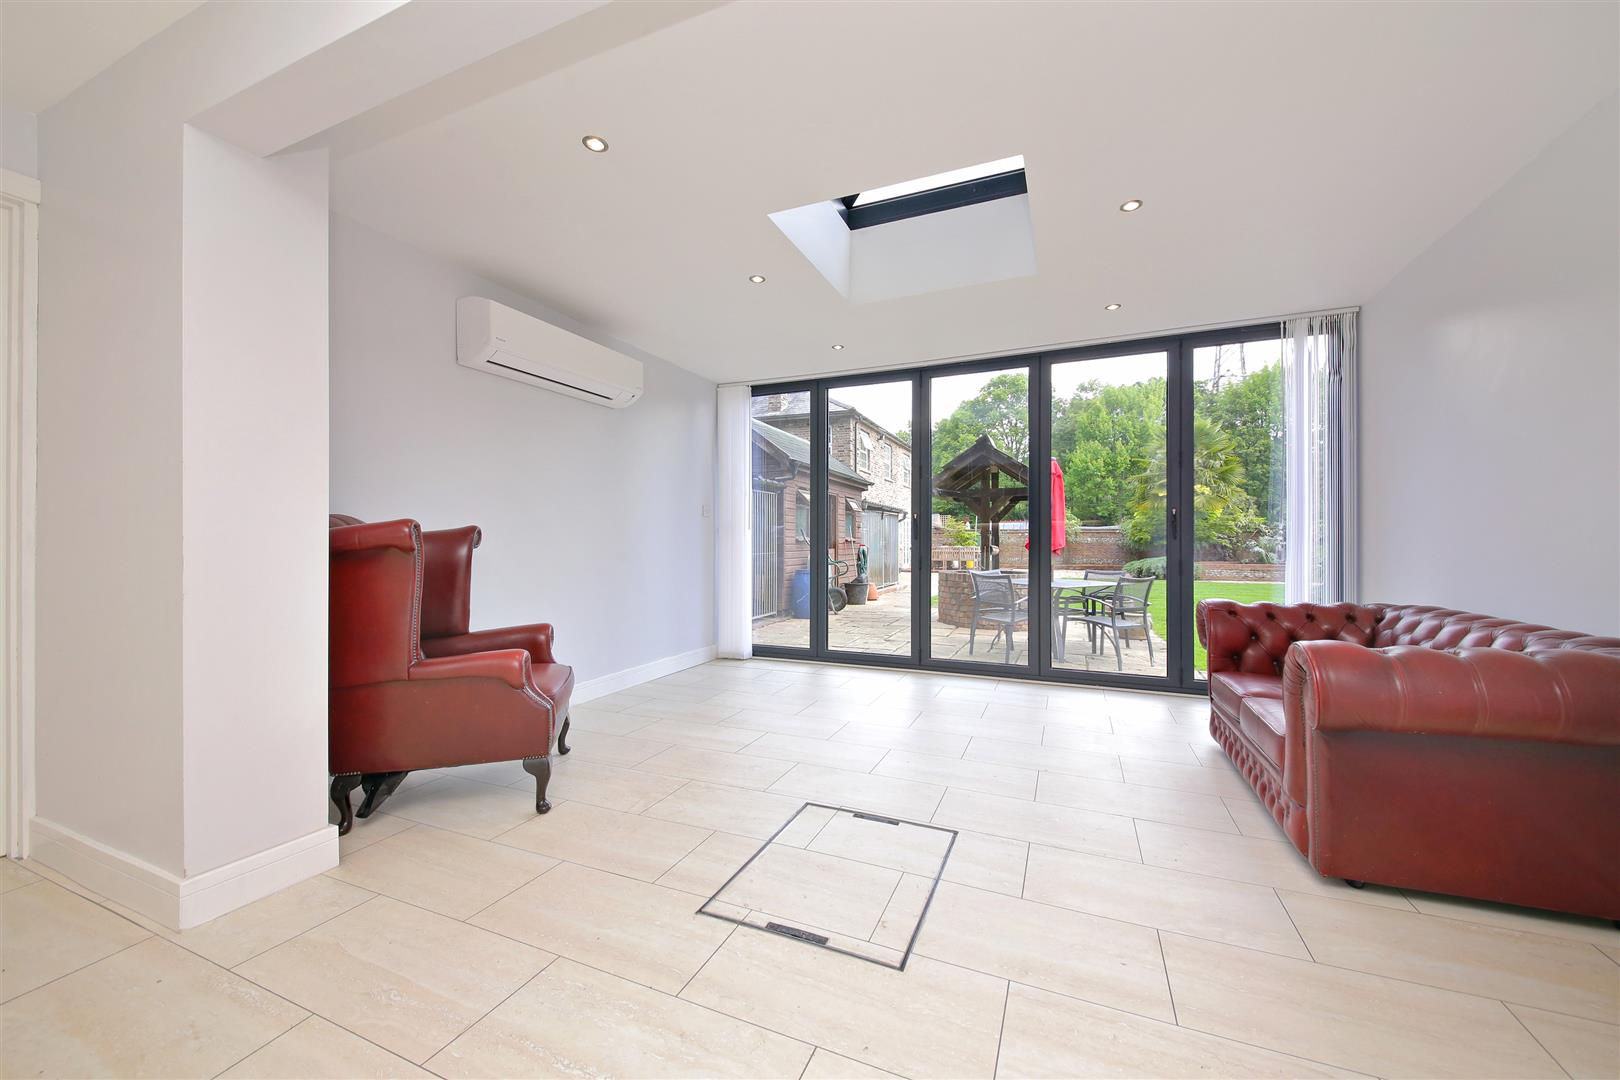 3 bed for sale in Station Road, Bricket Wood - (Property Image 8)